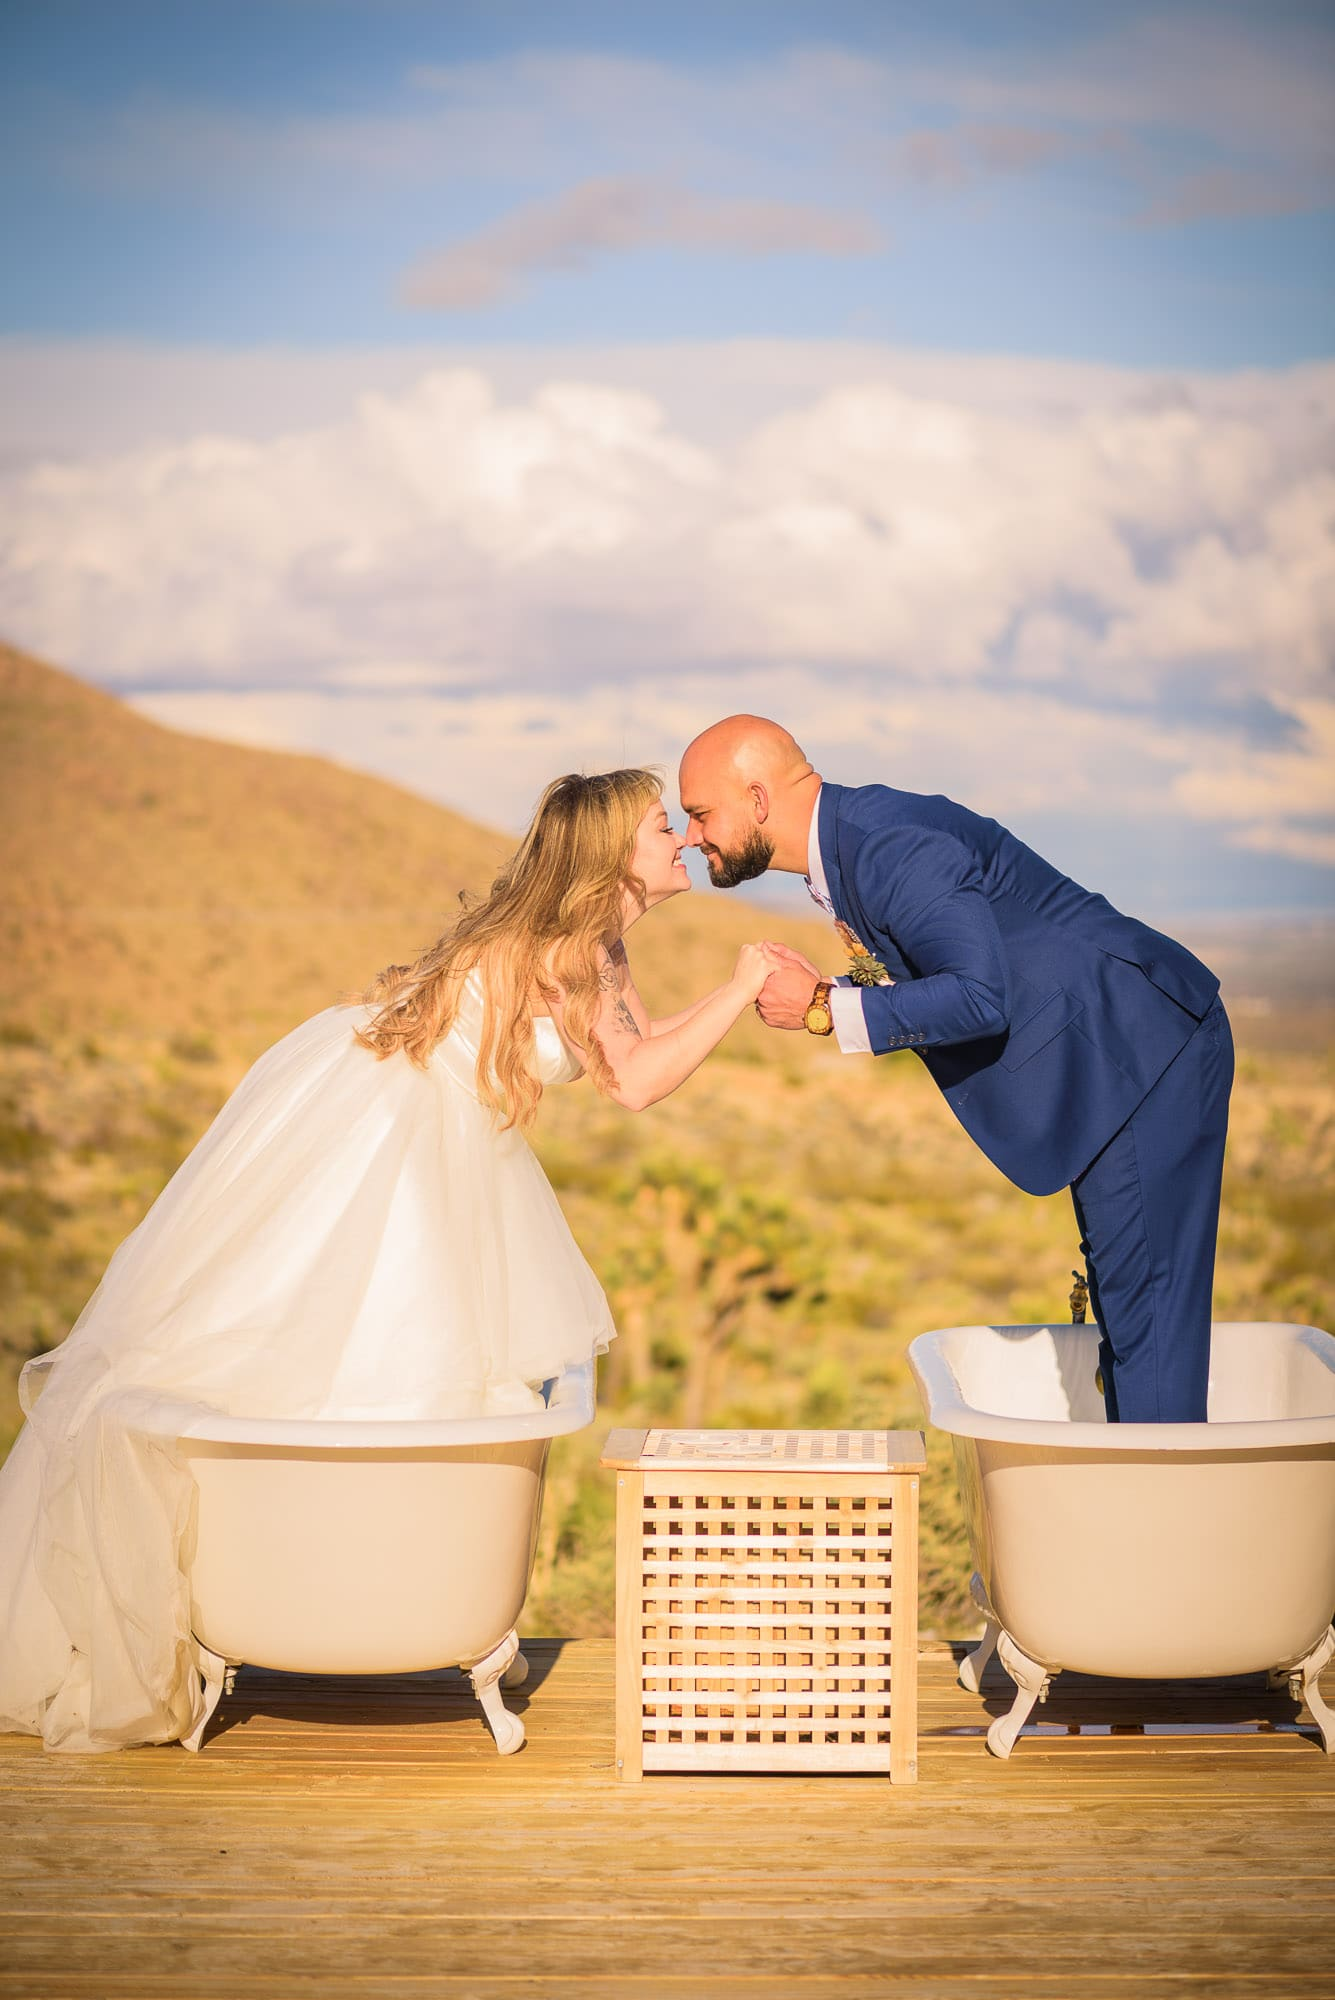 045_Alan_and_Heidi_Joshua_Tree_Spring_Elopement